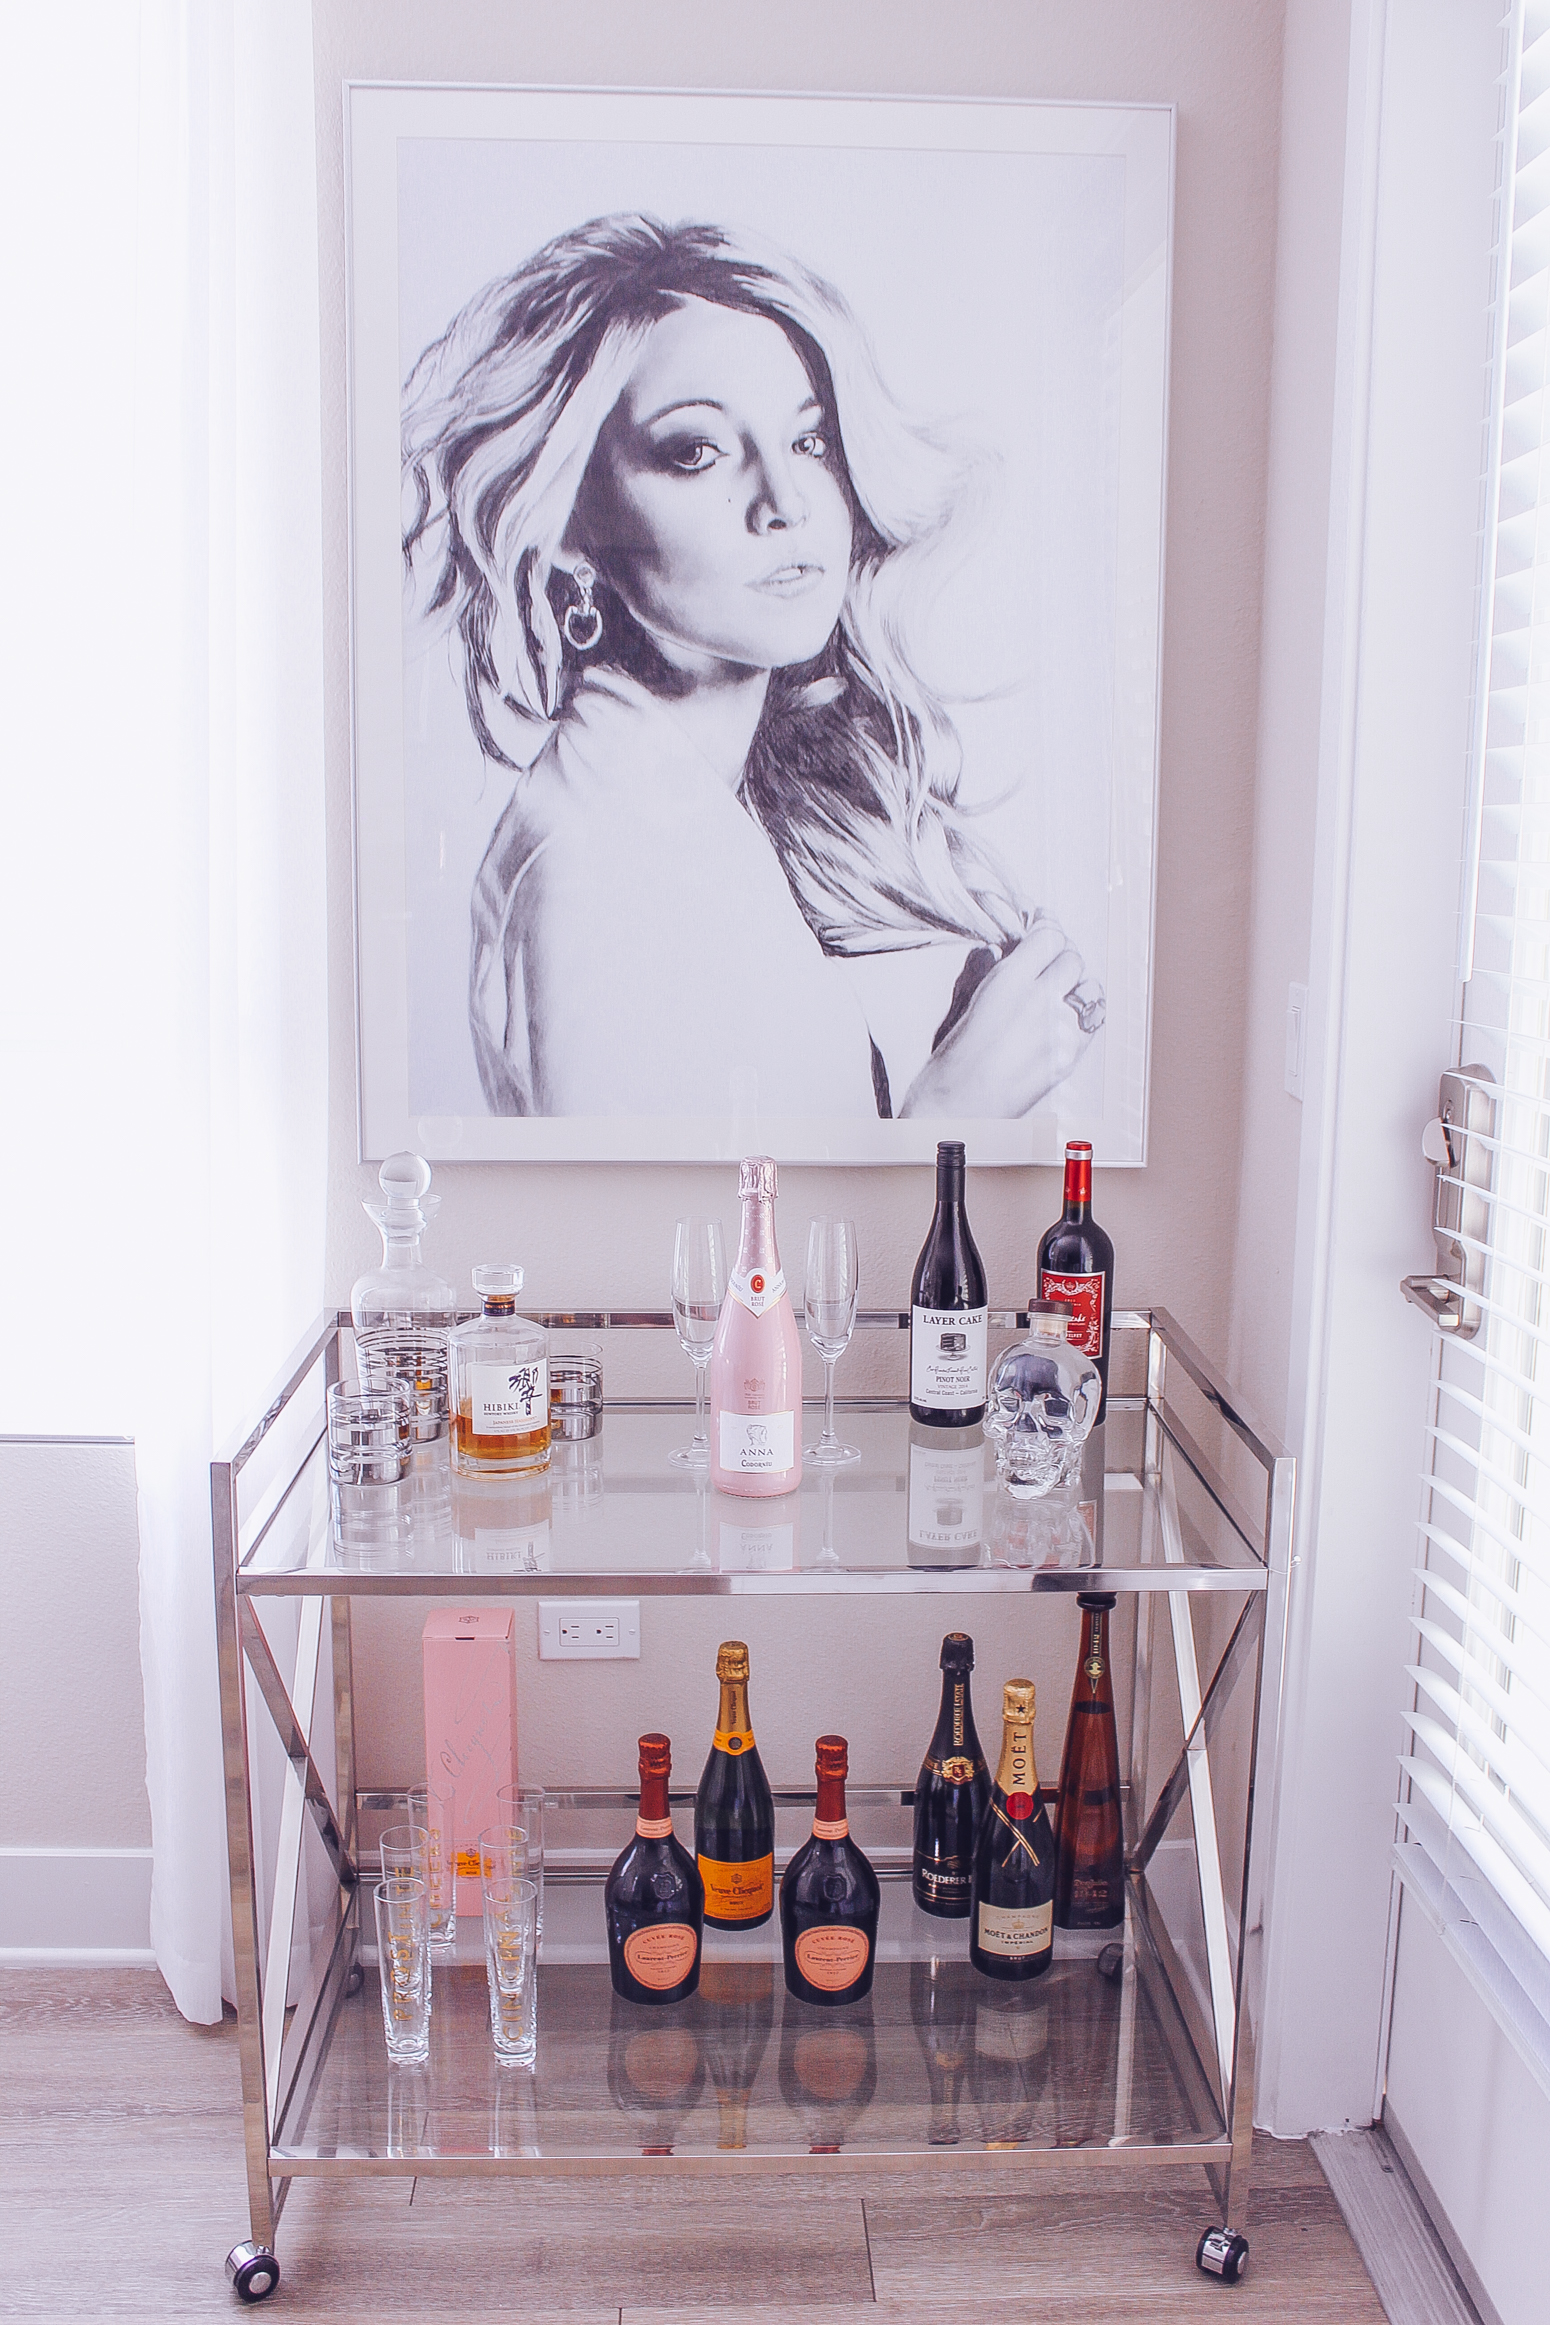 Blondie in the City Decor | Bar Cart Styling w/ @Livingspaces | Blake Lively Print @fineartamerica | Chic Bar Cart | Metallic Bar Cart